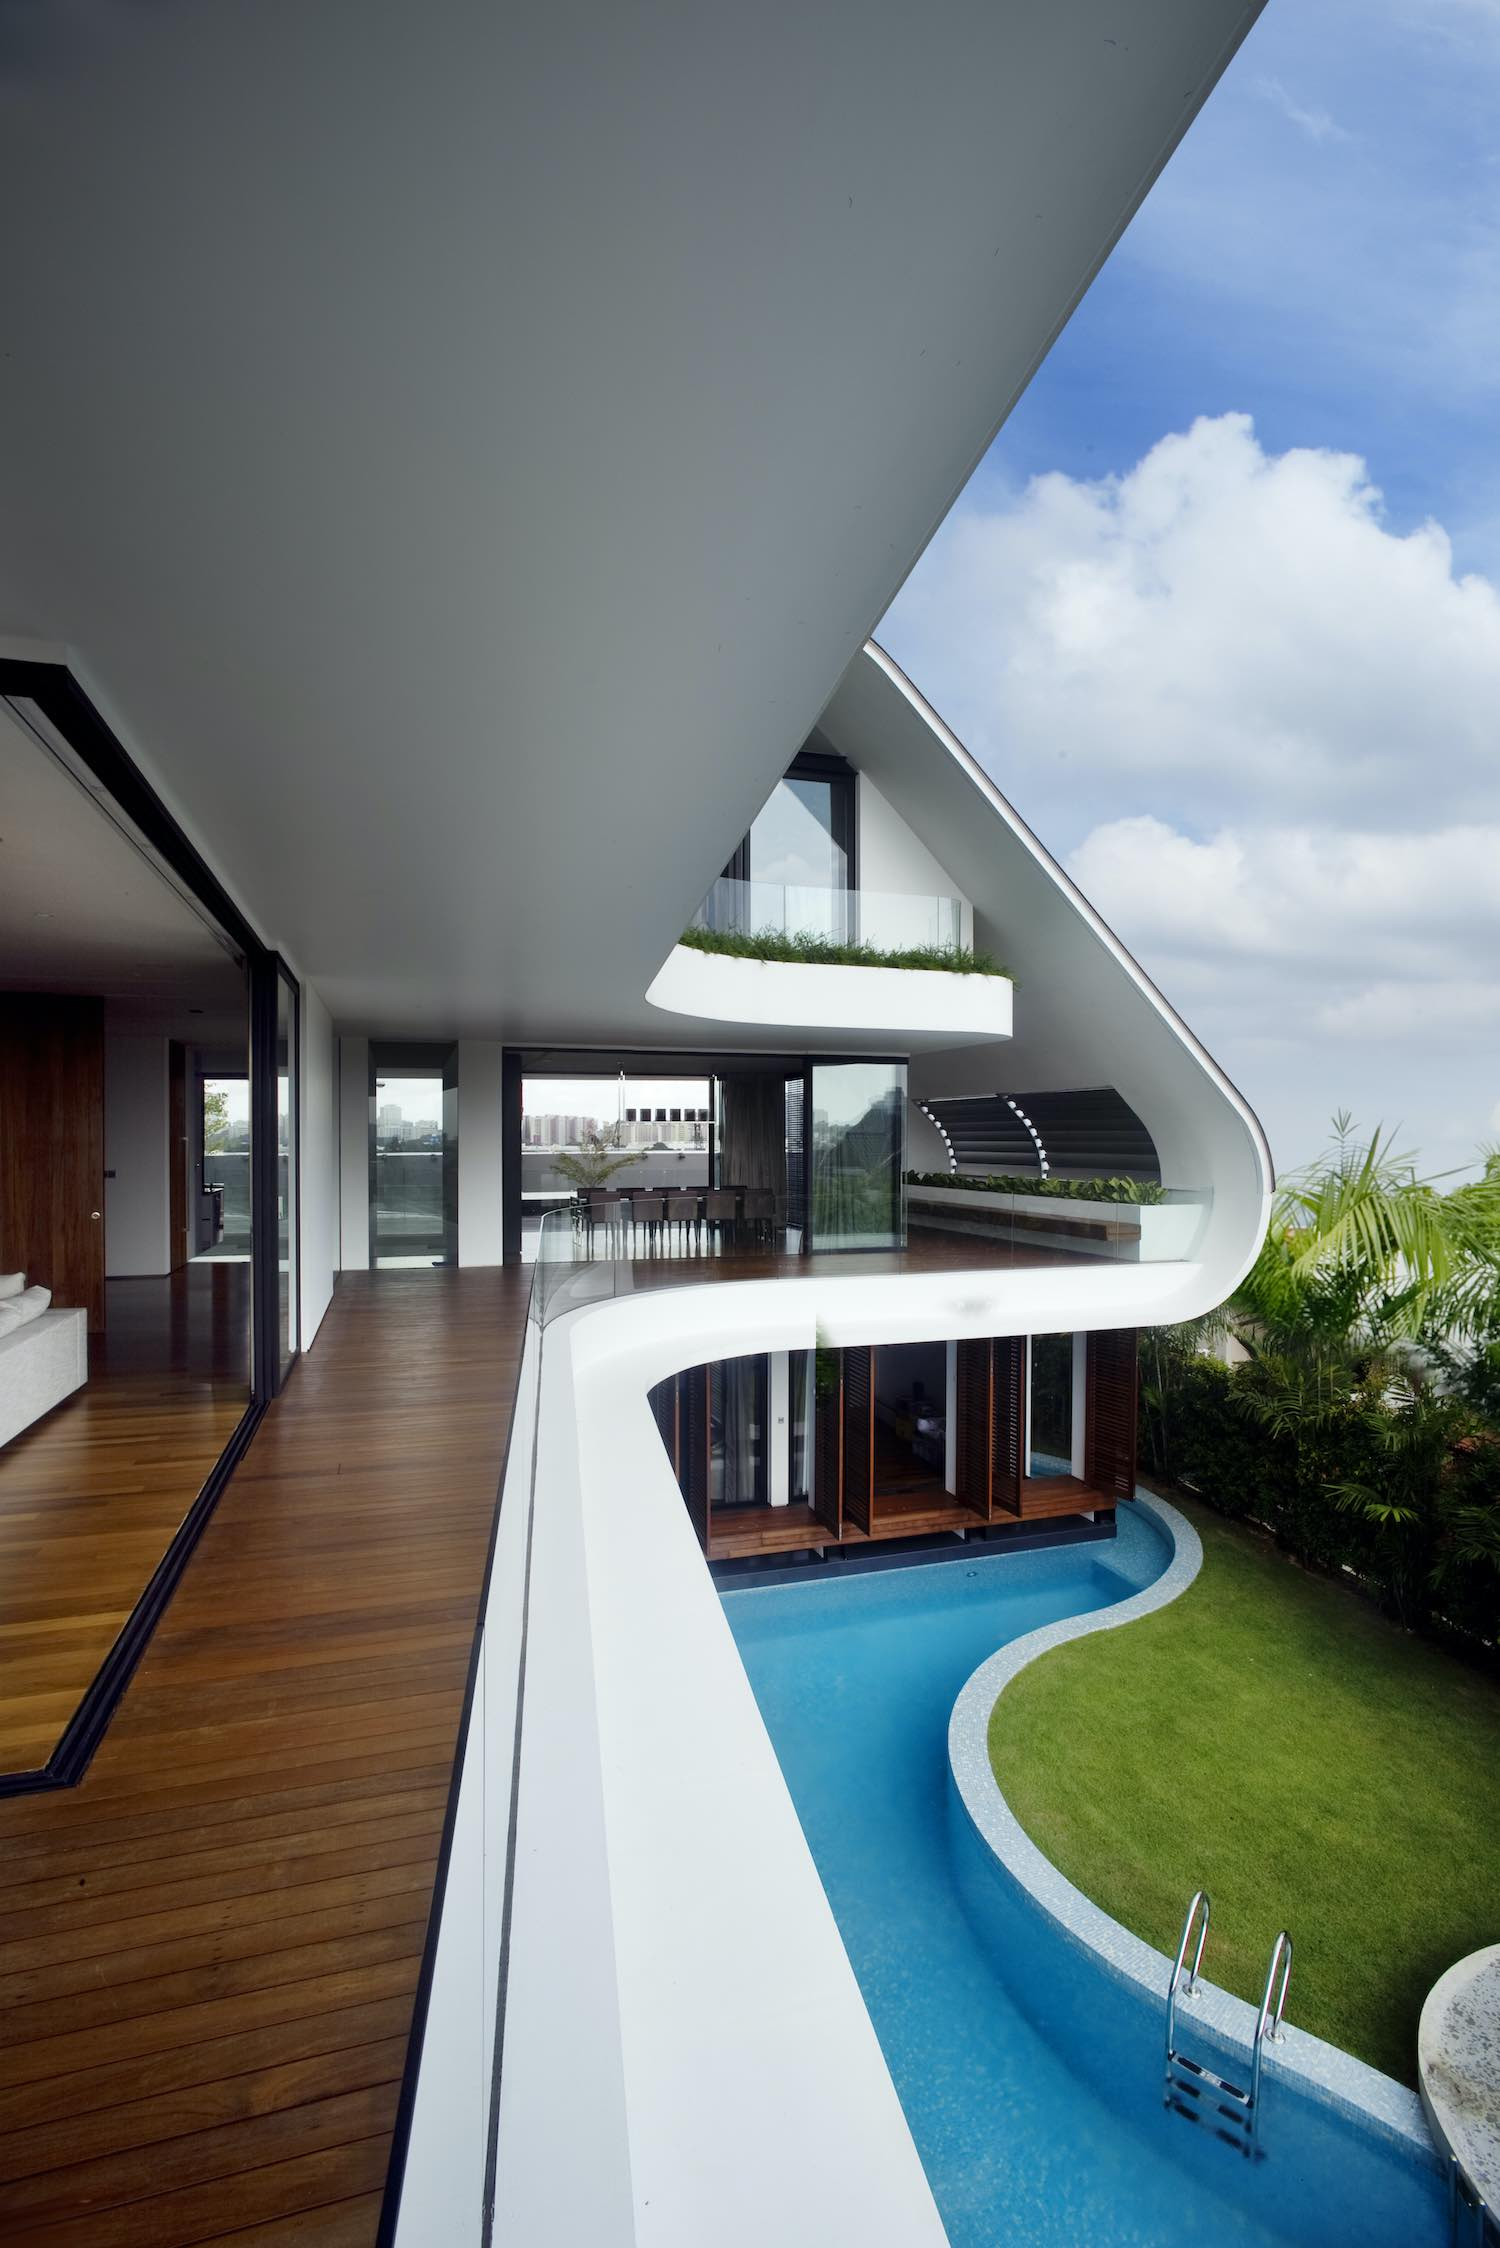 house with long balcony over pool